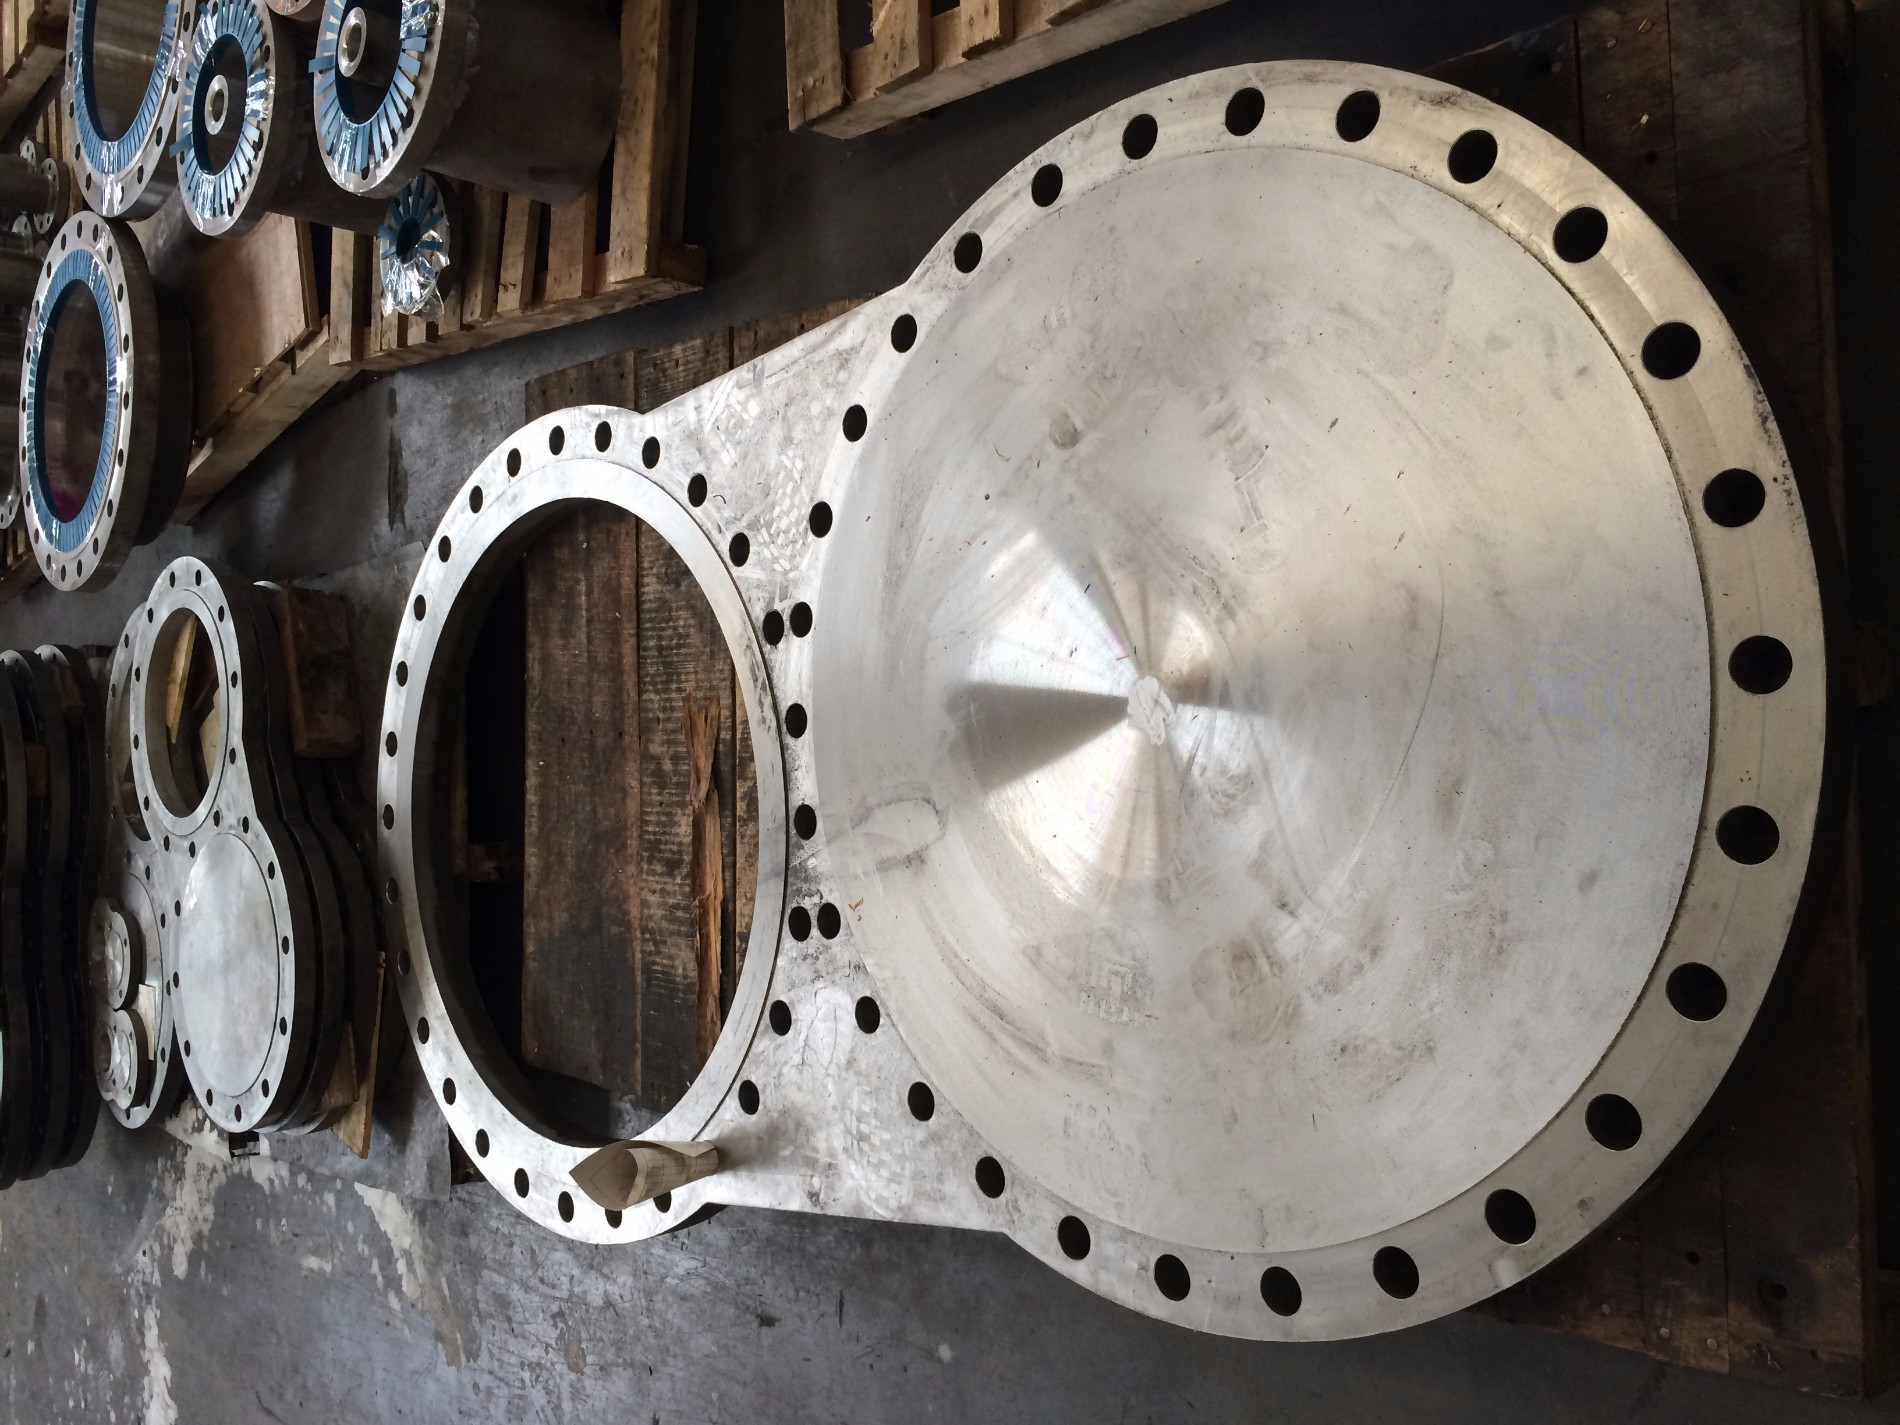 Forged Nickel Alloy Special Flanges Manufacturers, Forged Nickel Alloy Special Flanges Factory, Supply Forged Nickel Alloy Special Flanges